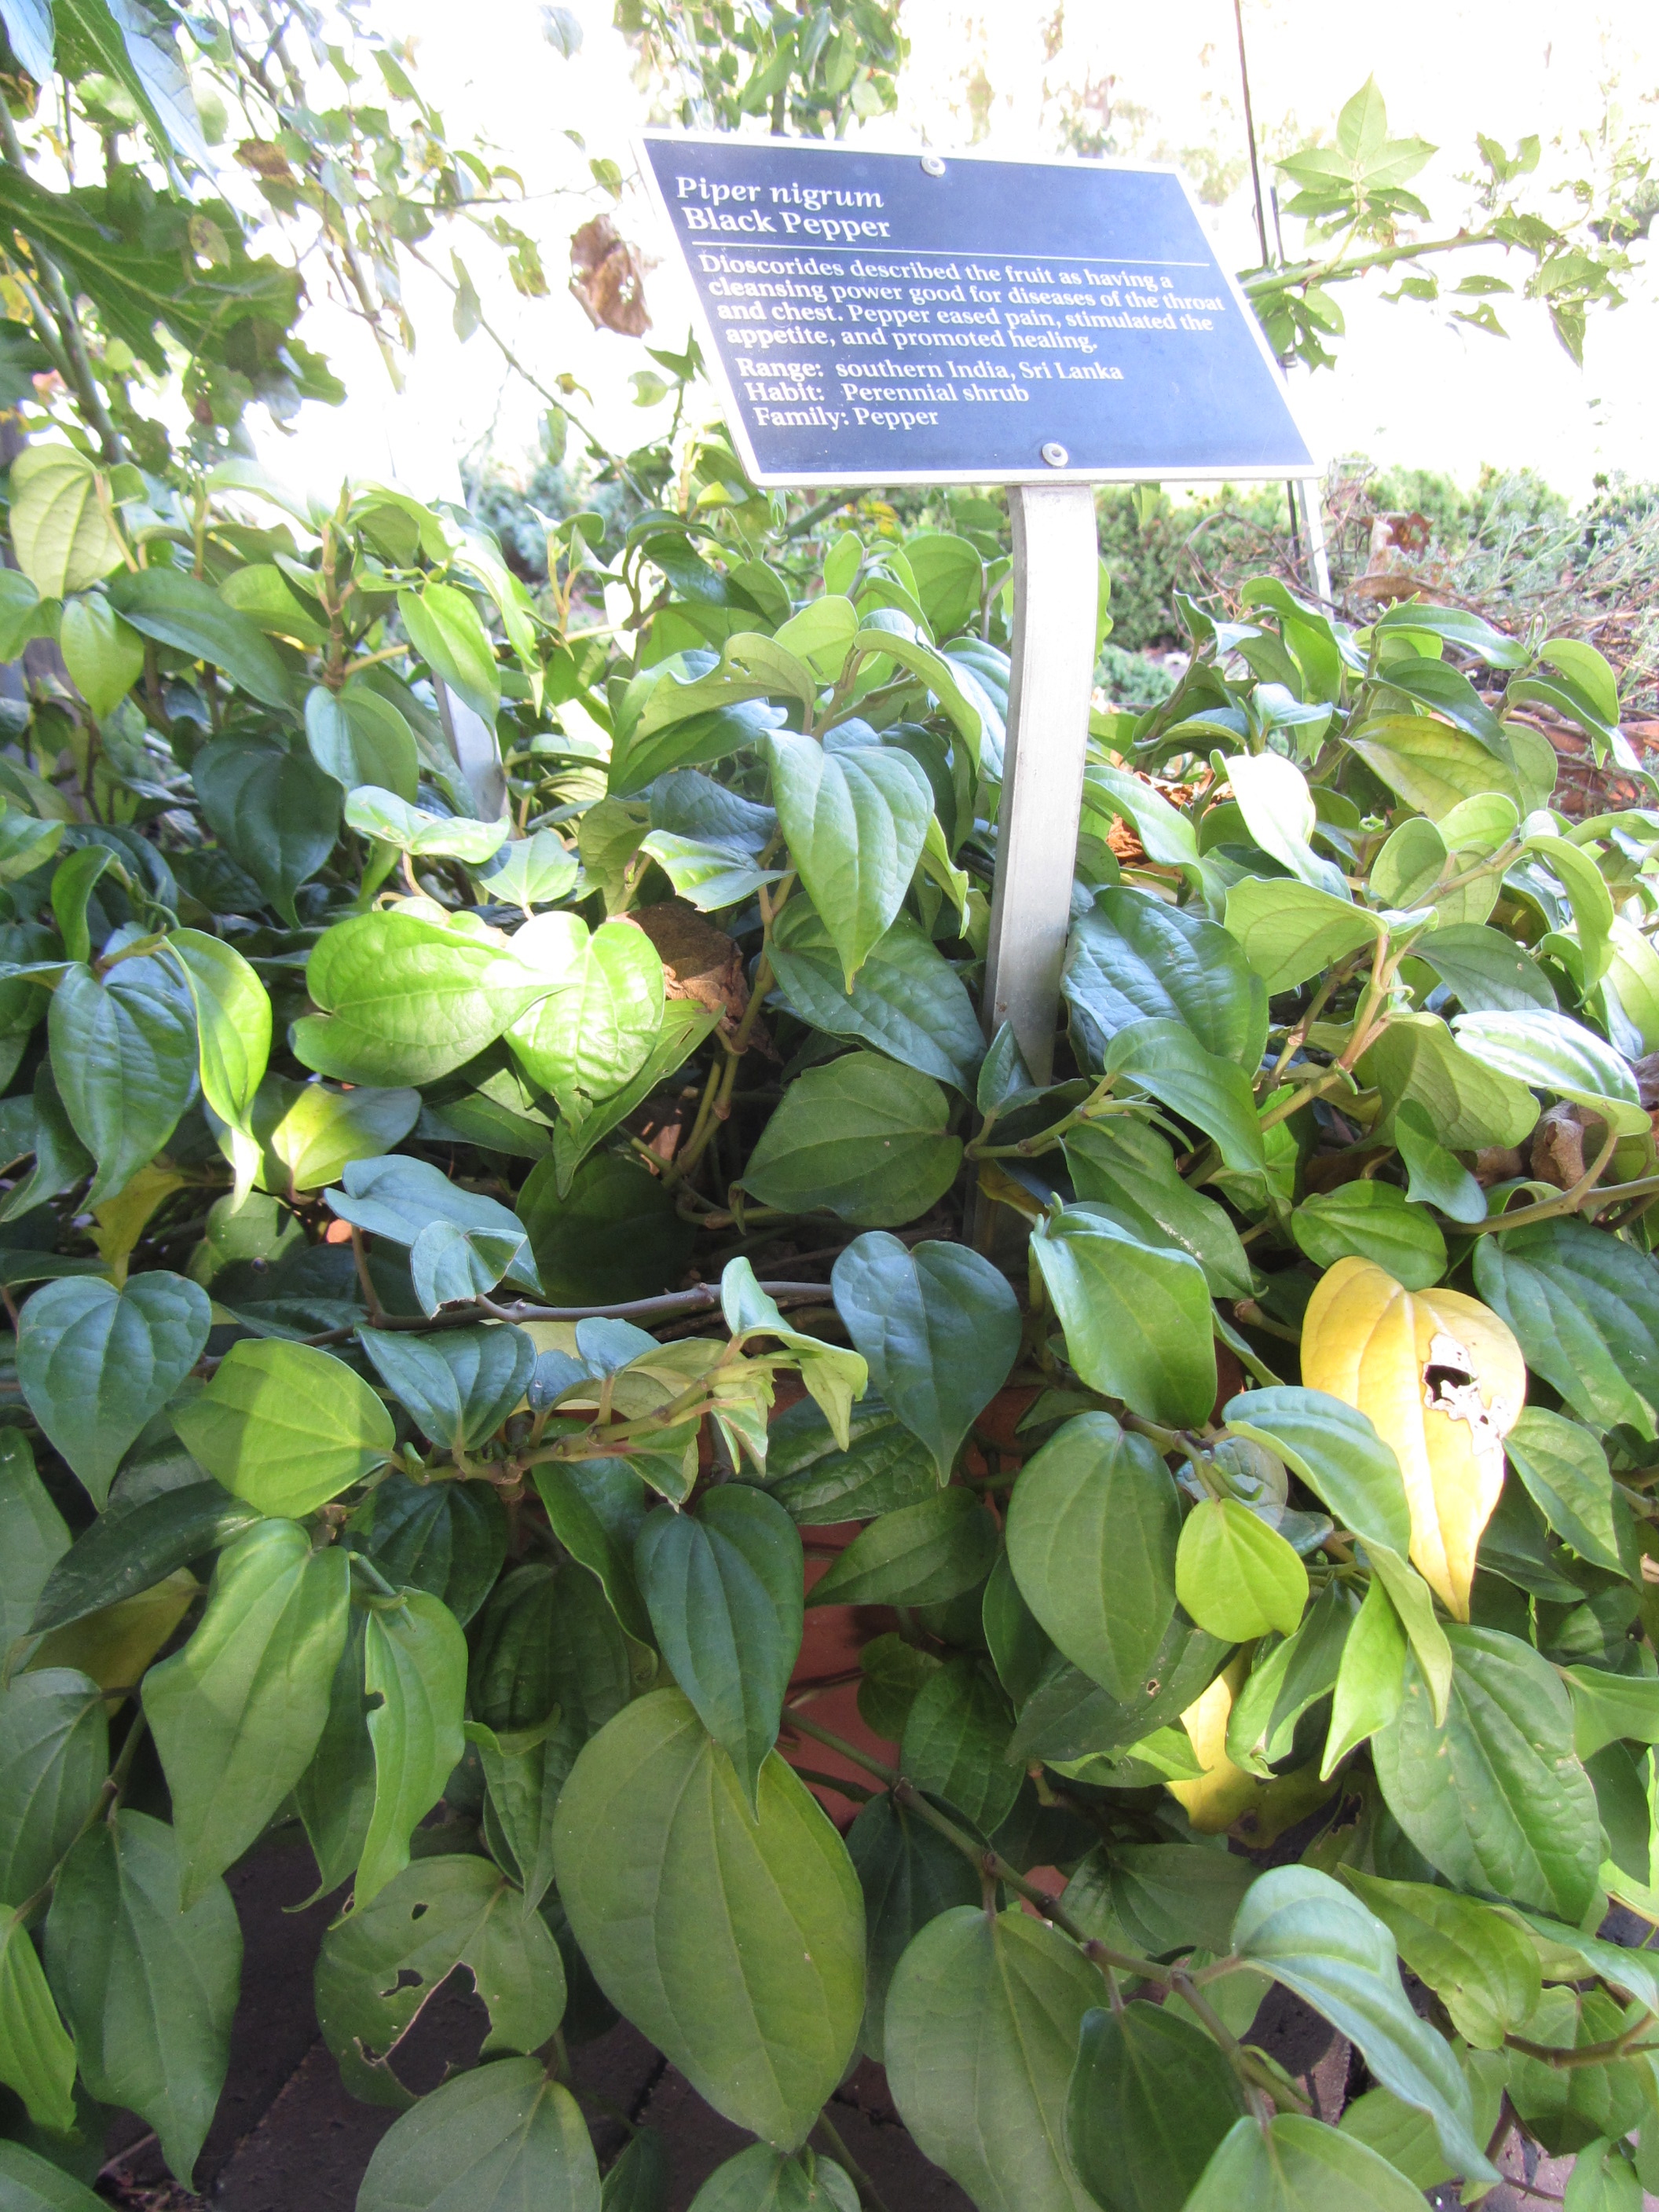 varieties of the pepper experience the botanist in the